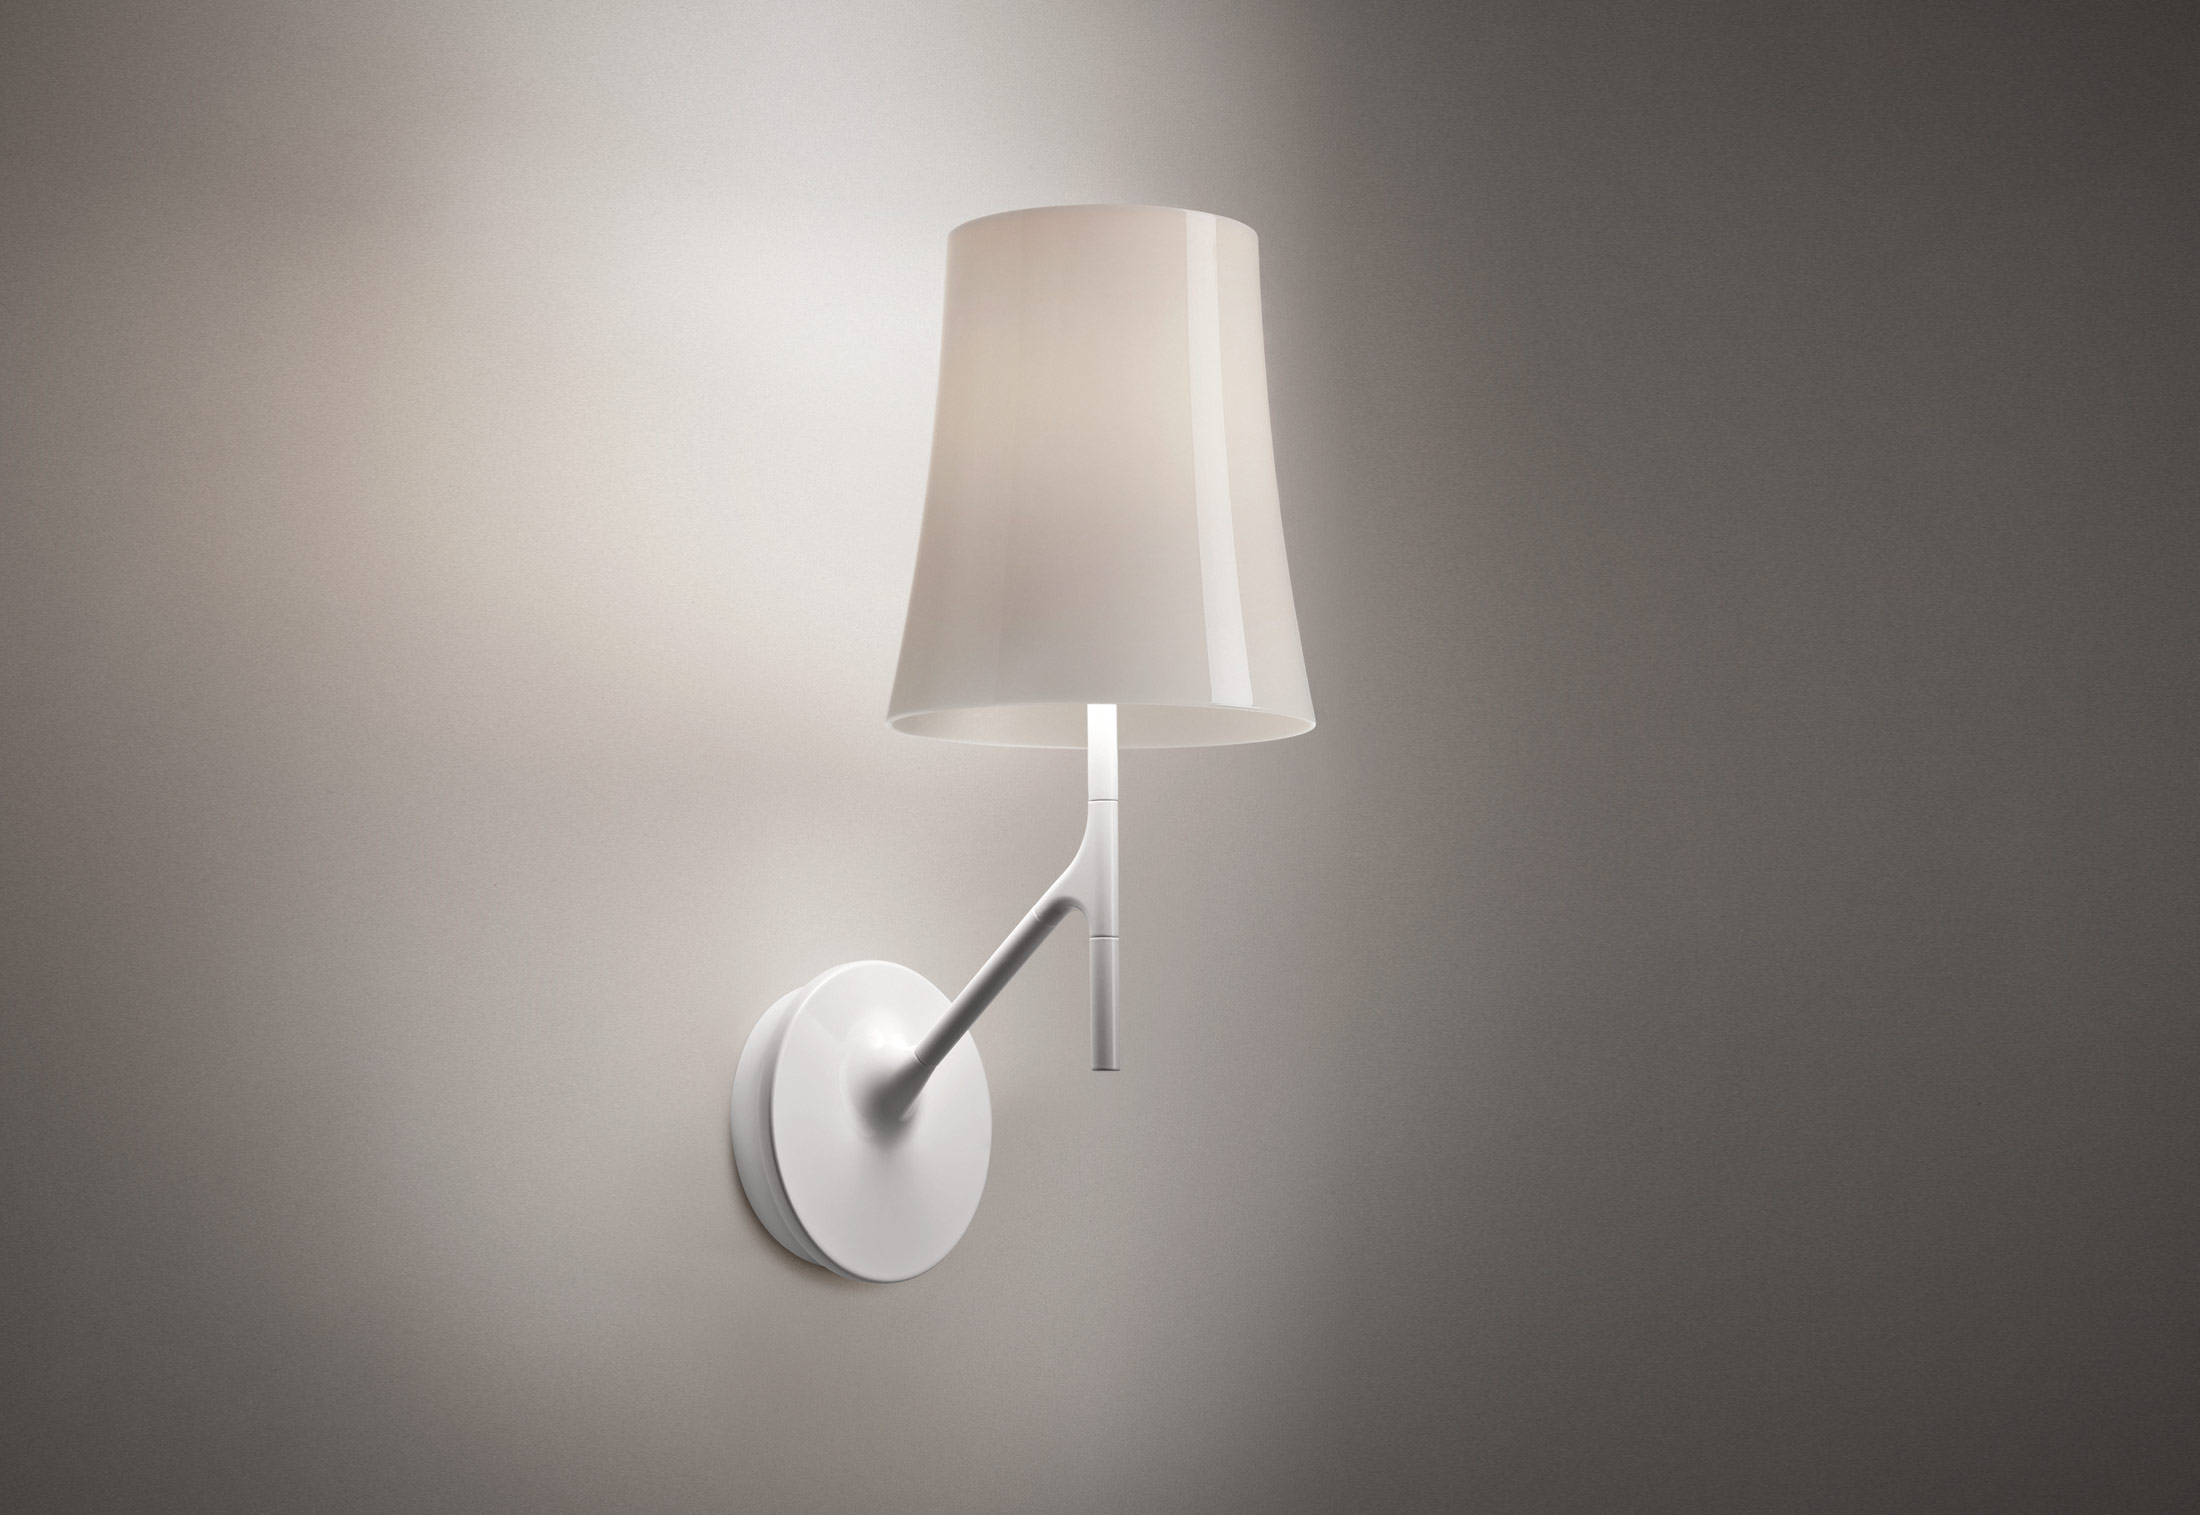 Wall Mounted Inspection Lamp : Birdie wall lamp by Foscarini STYLEPARK